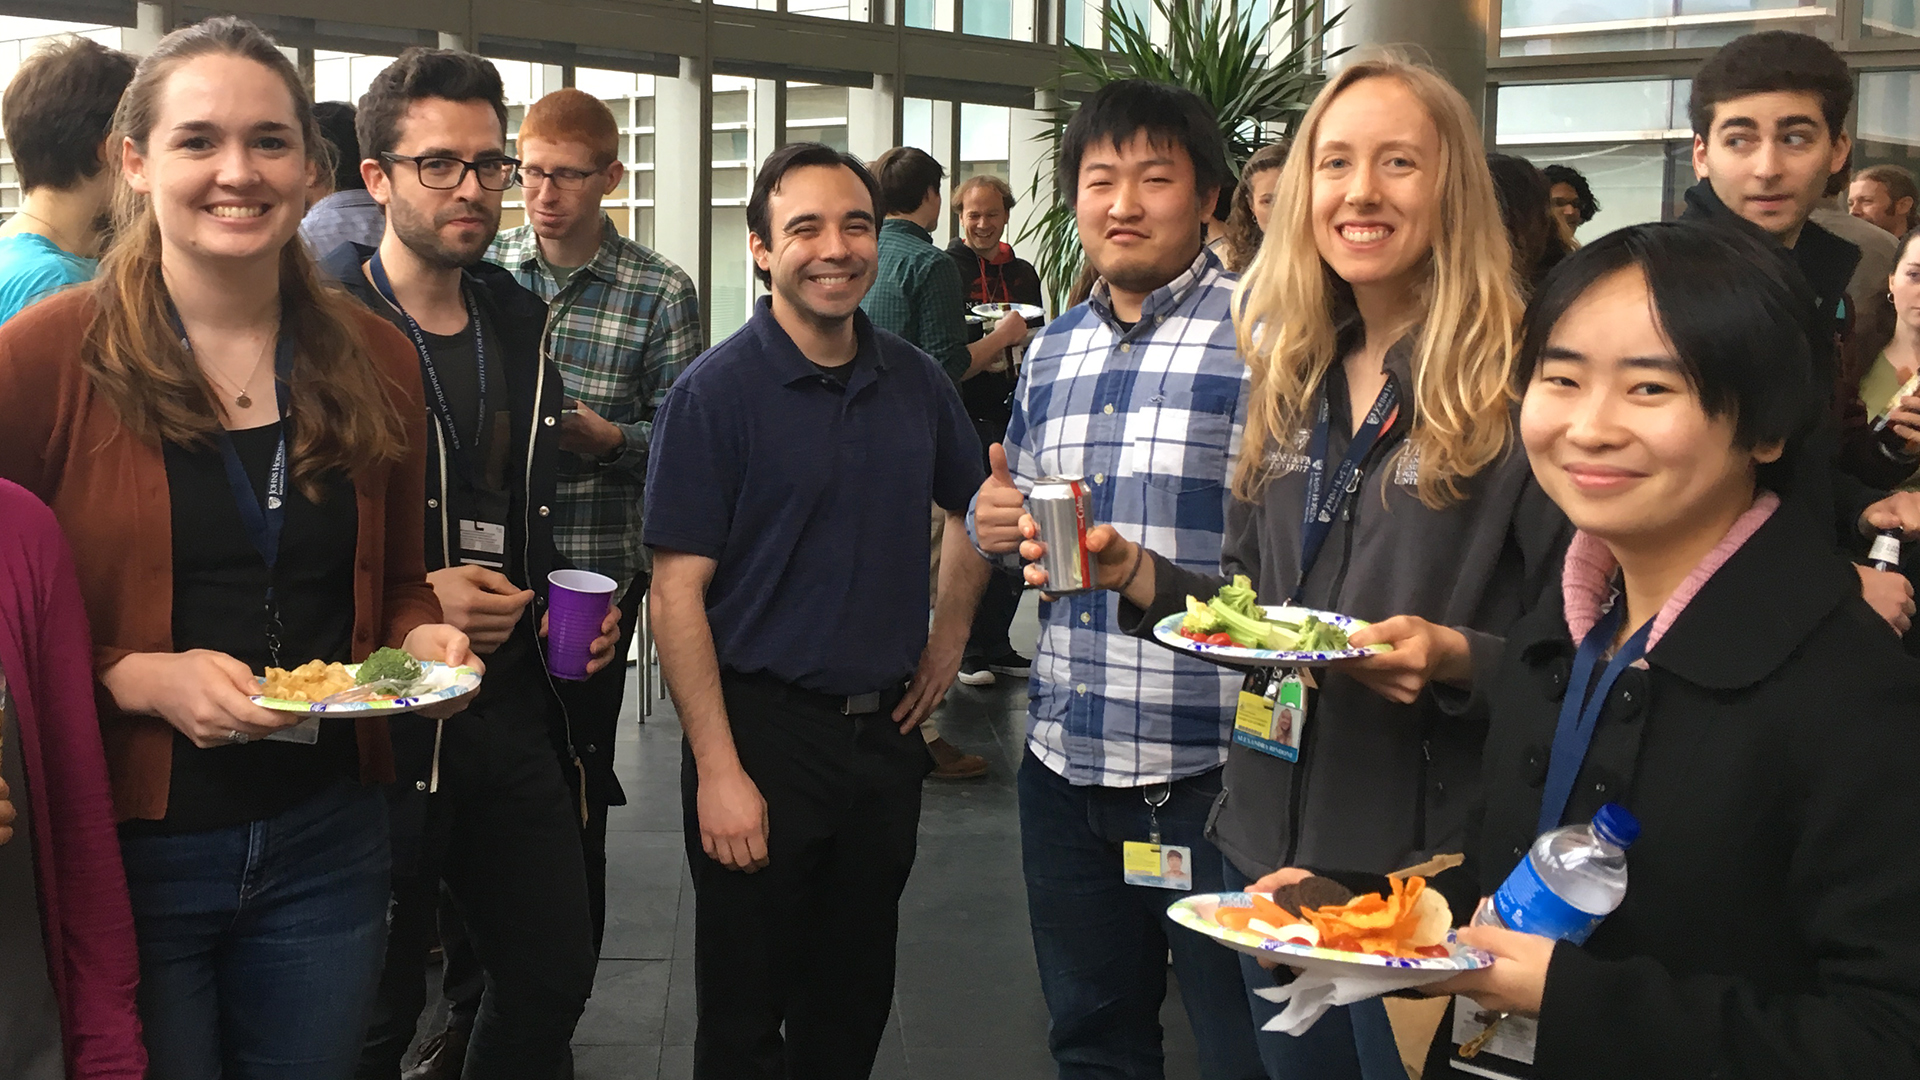 A group of graduate students are holding food and drinks and enjoying a social hour.